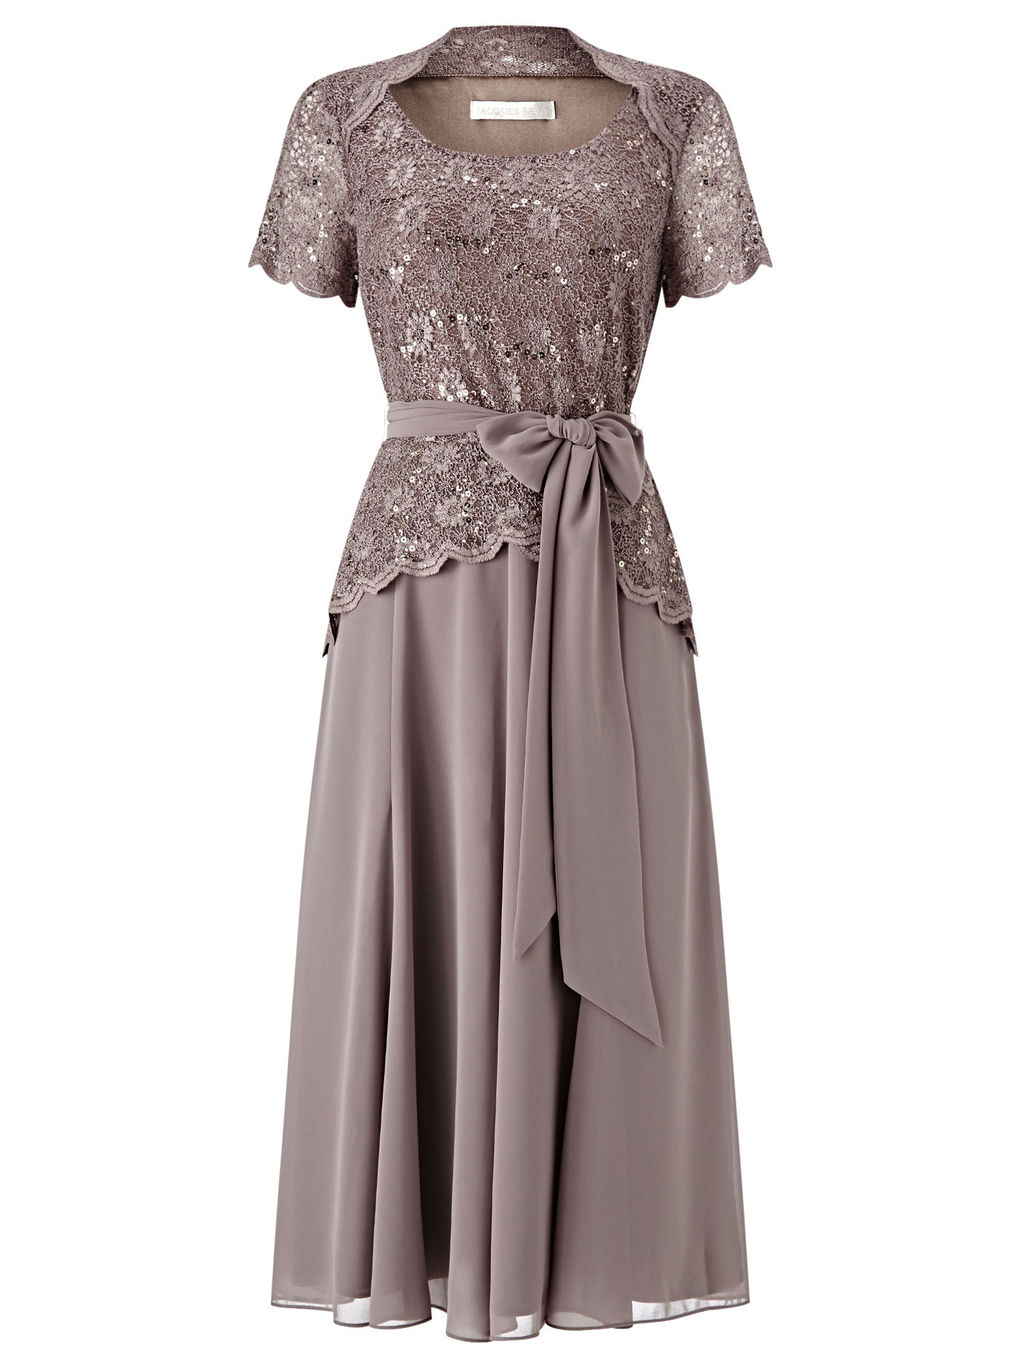 Lace Bodice Chiffon Dress, Brown - style: a-line; length: below the knee; neckline: round neck; pattern: plain; waist detail: belted waist/tie at waist/drawstring; predominant colour: charcoal; fit: fitted at waist & bust; fibres: polyester/polyamide - stretch; occasions: occasion; sleeve length: short sleeve; sleeve style: standard; texture group: sheer fabrics/chiffon/organza etc.; pattern type: fabric; embellishment: lace; season: s/s 2016